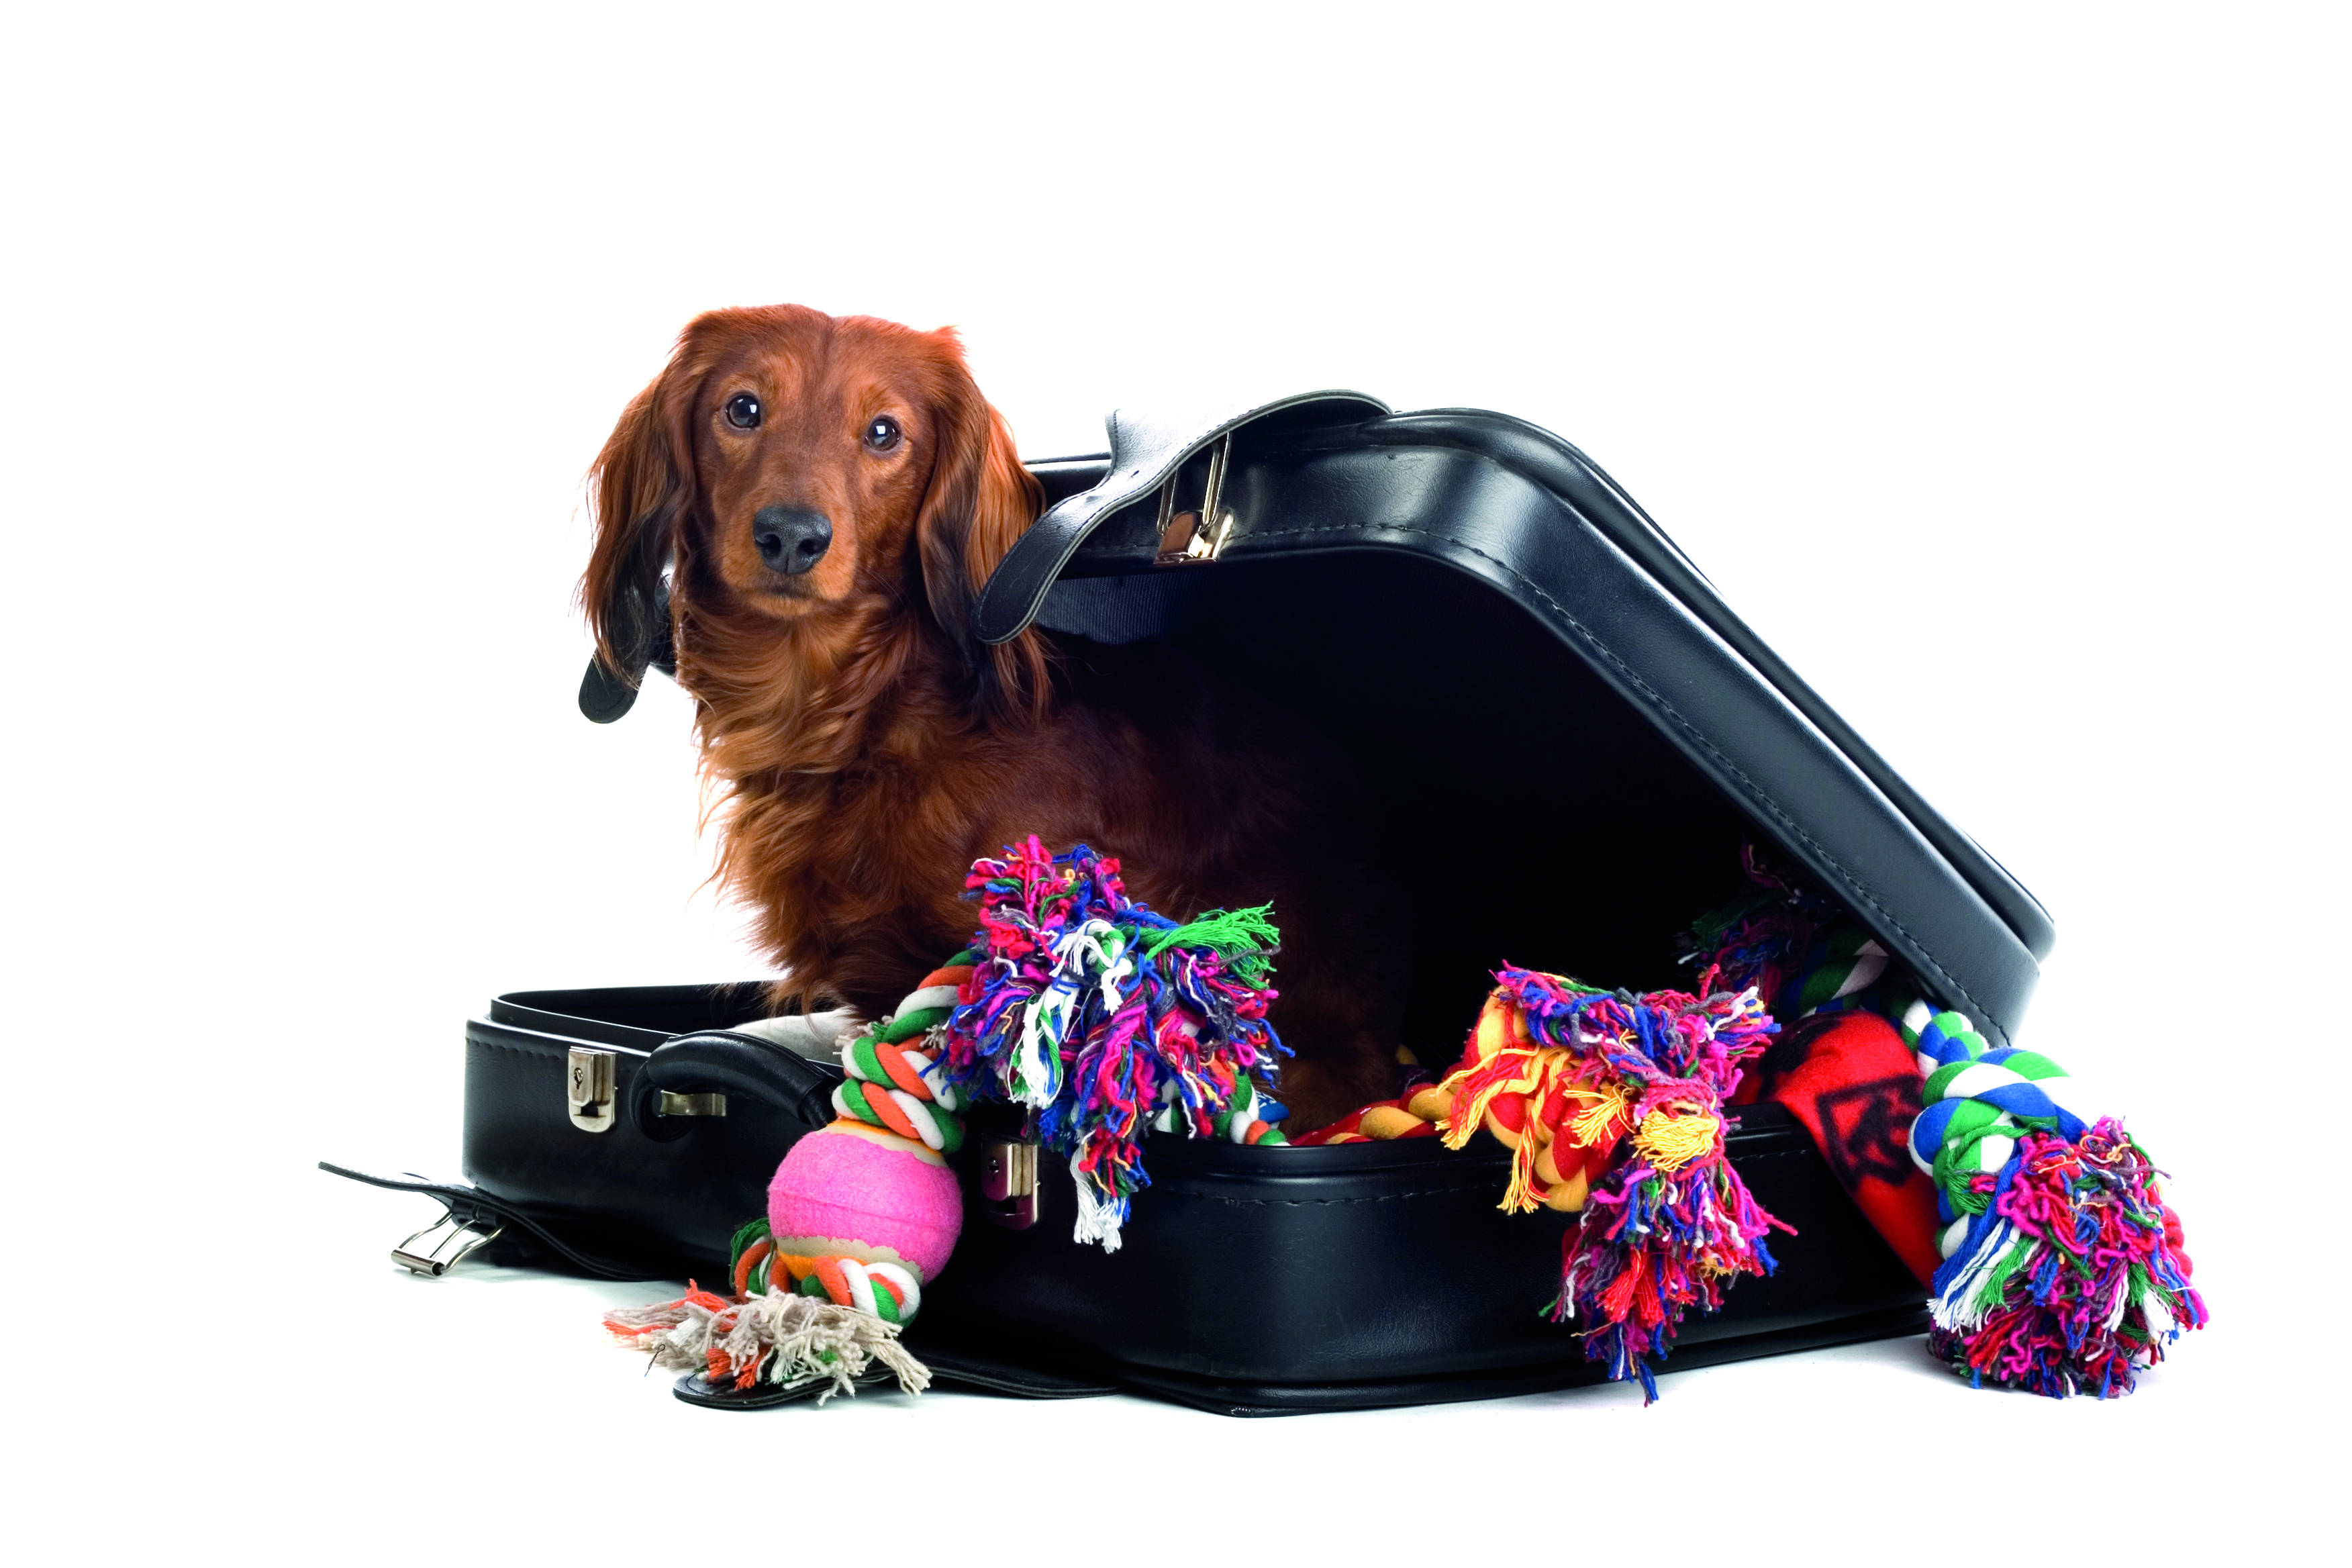 Emigrating with your pet - your questions answered Emigrating with your pet - your questions answered emigration